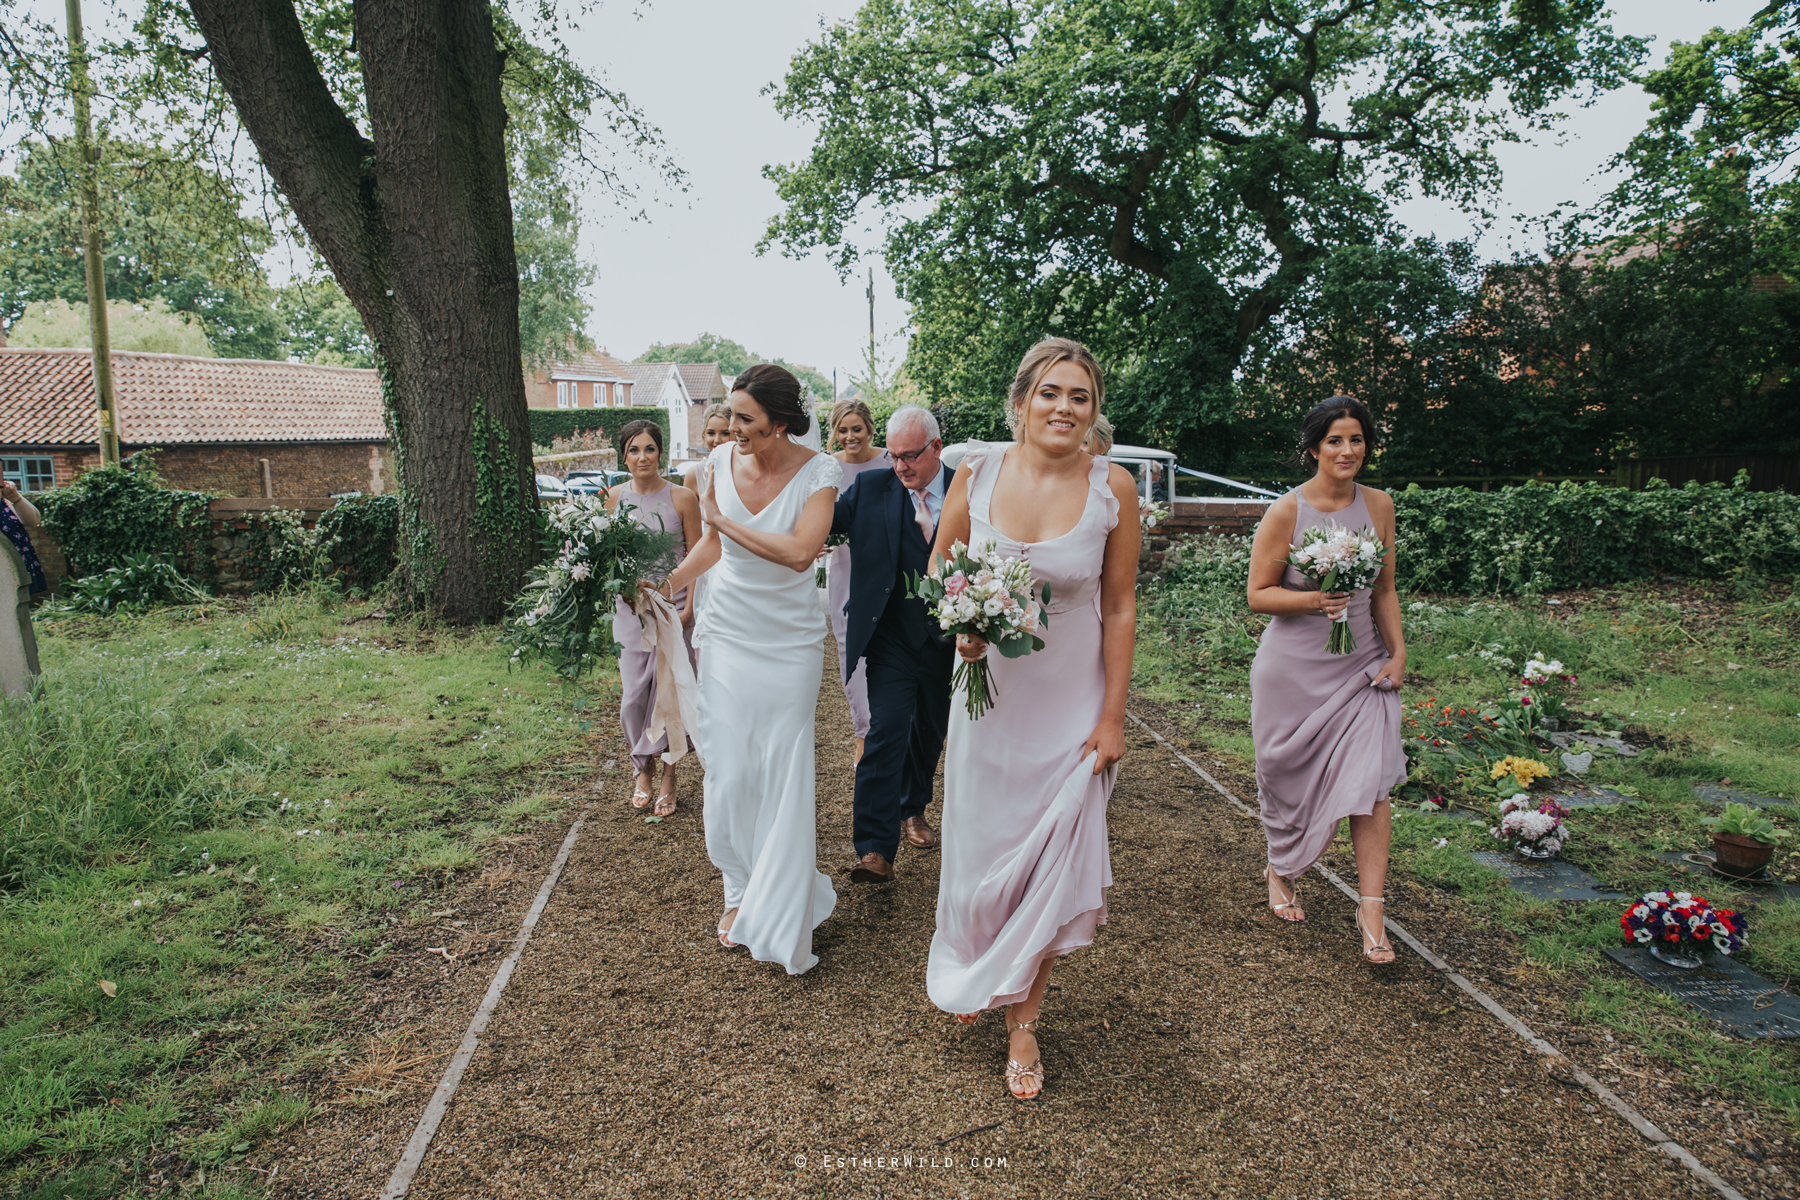 Wootton_Wedding_Copyright_Esther_Wild_Photographer_IMG_0811.jpg